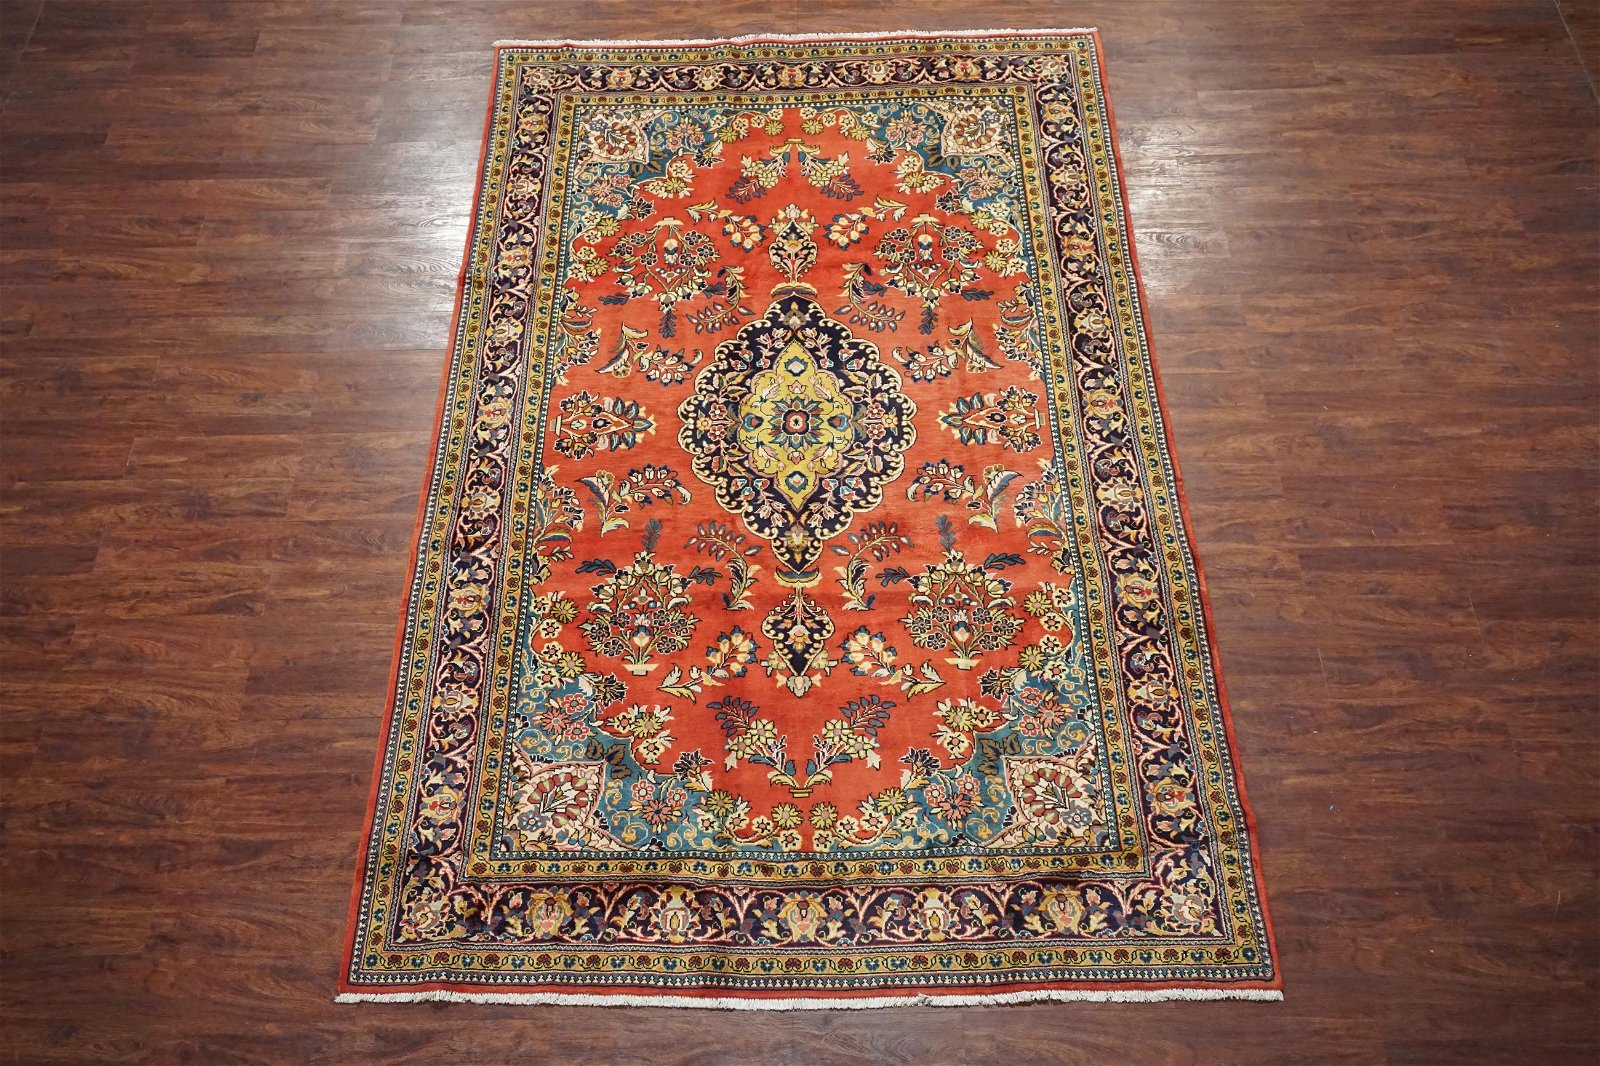 Antique 7X11 Persian Sarouk Hand-Knotted Wool Area Rug